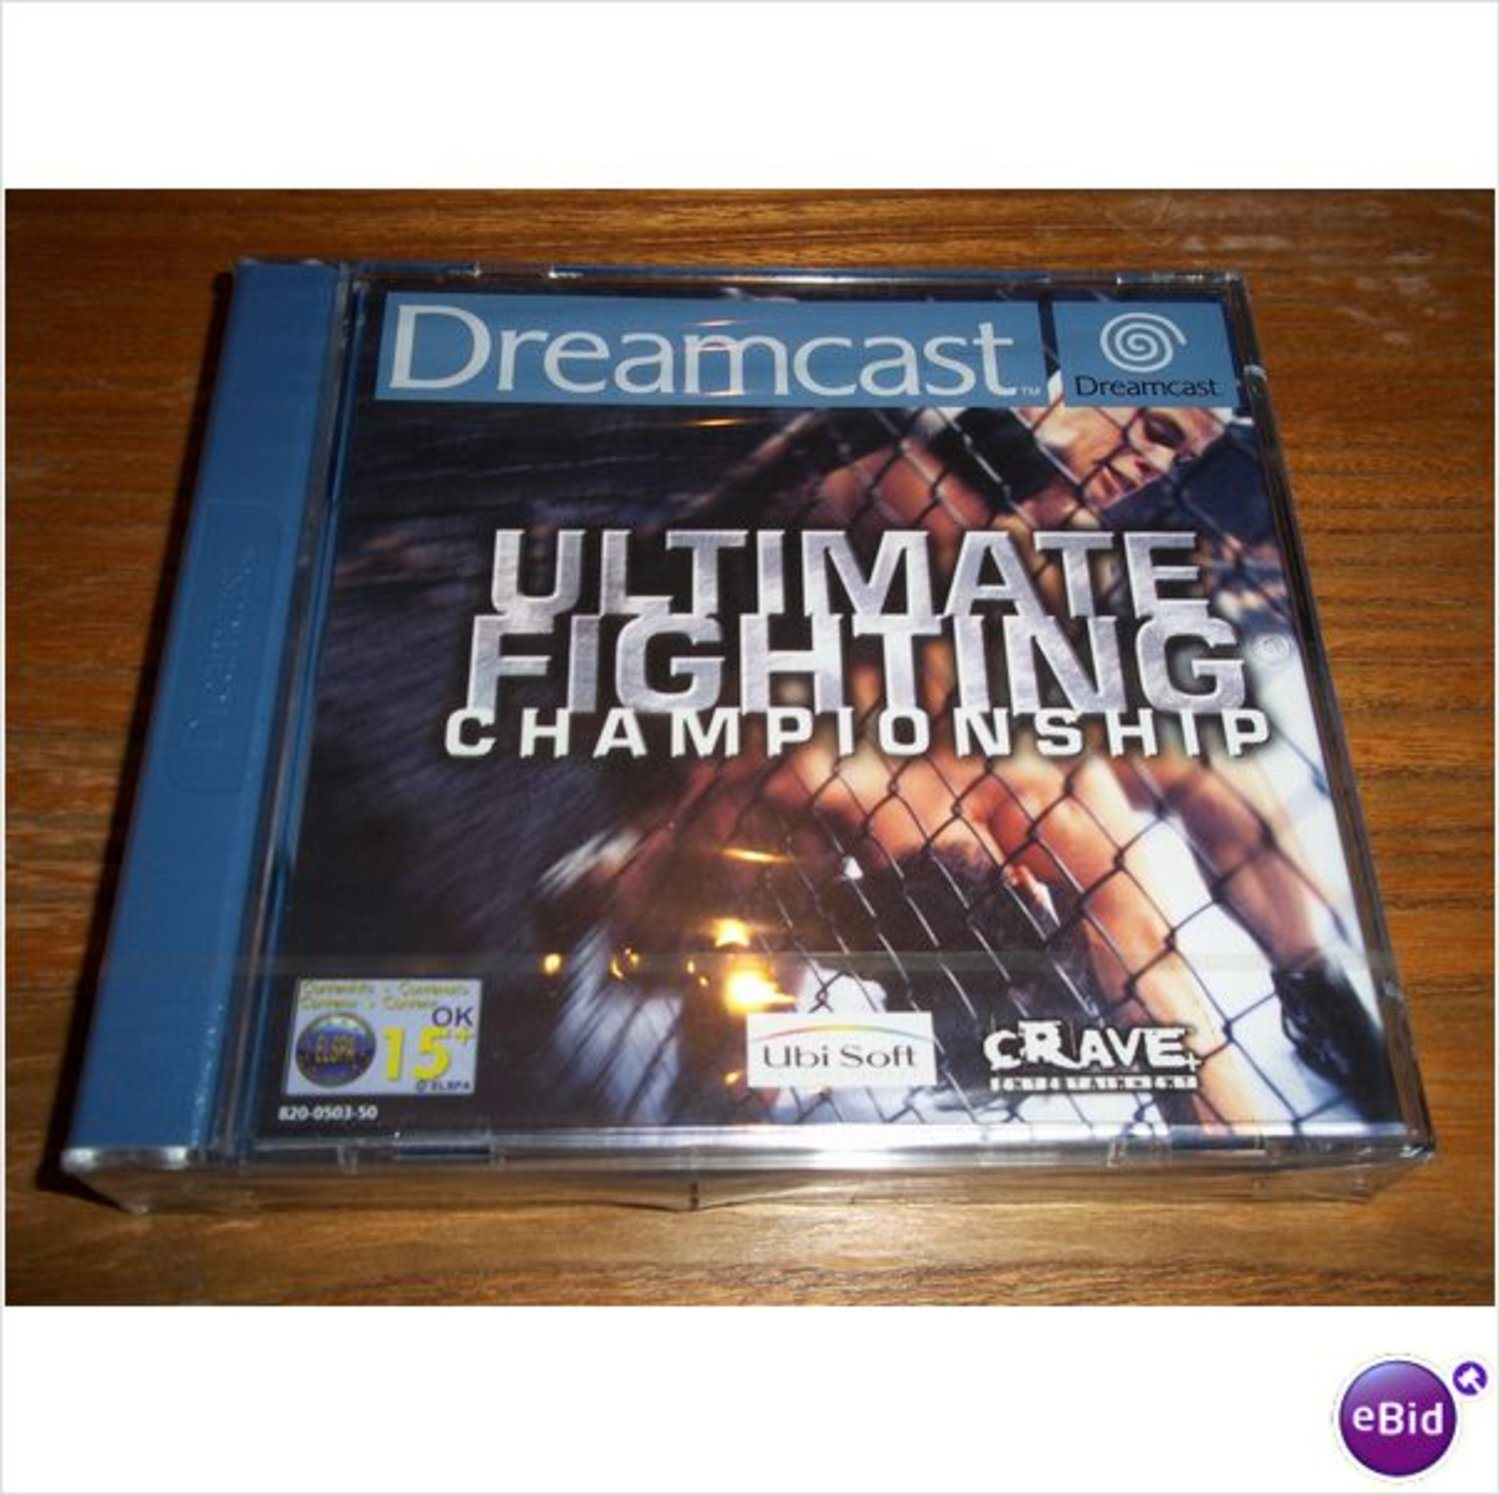 Ultimate Fighting Championship - Dreamcast